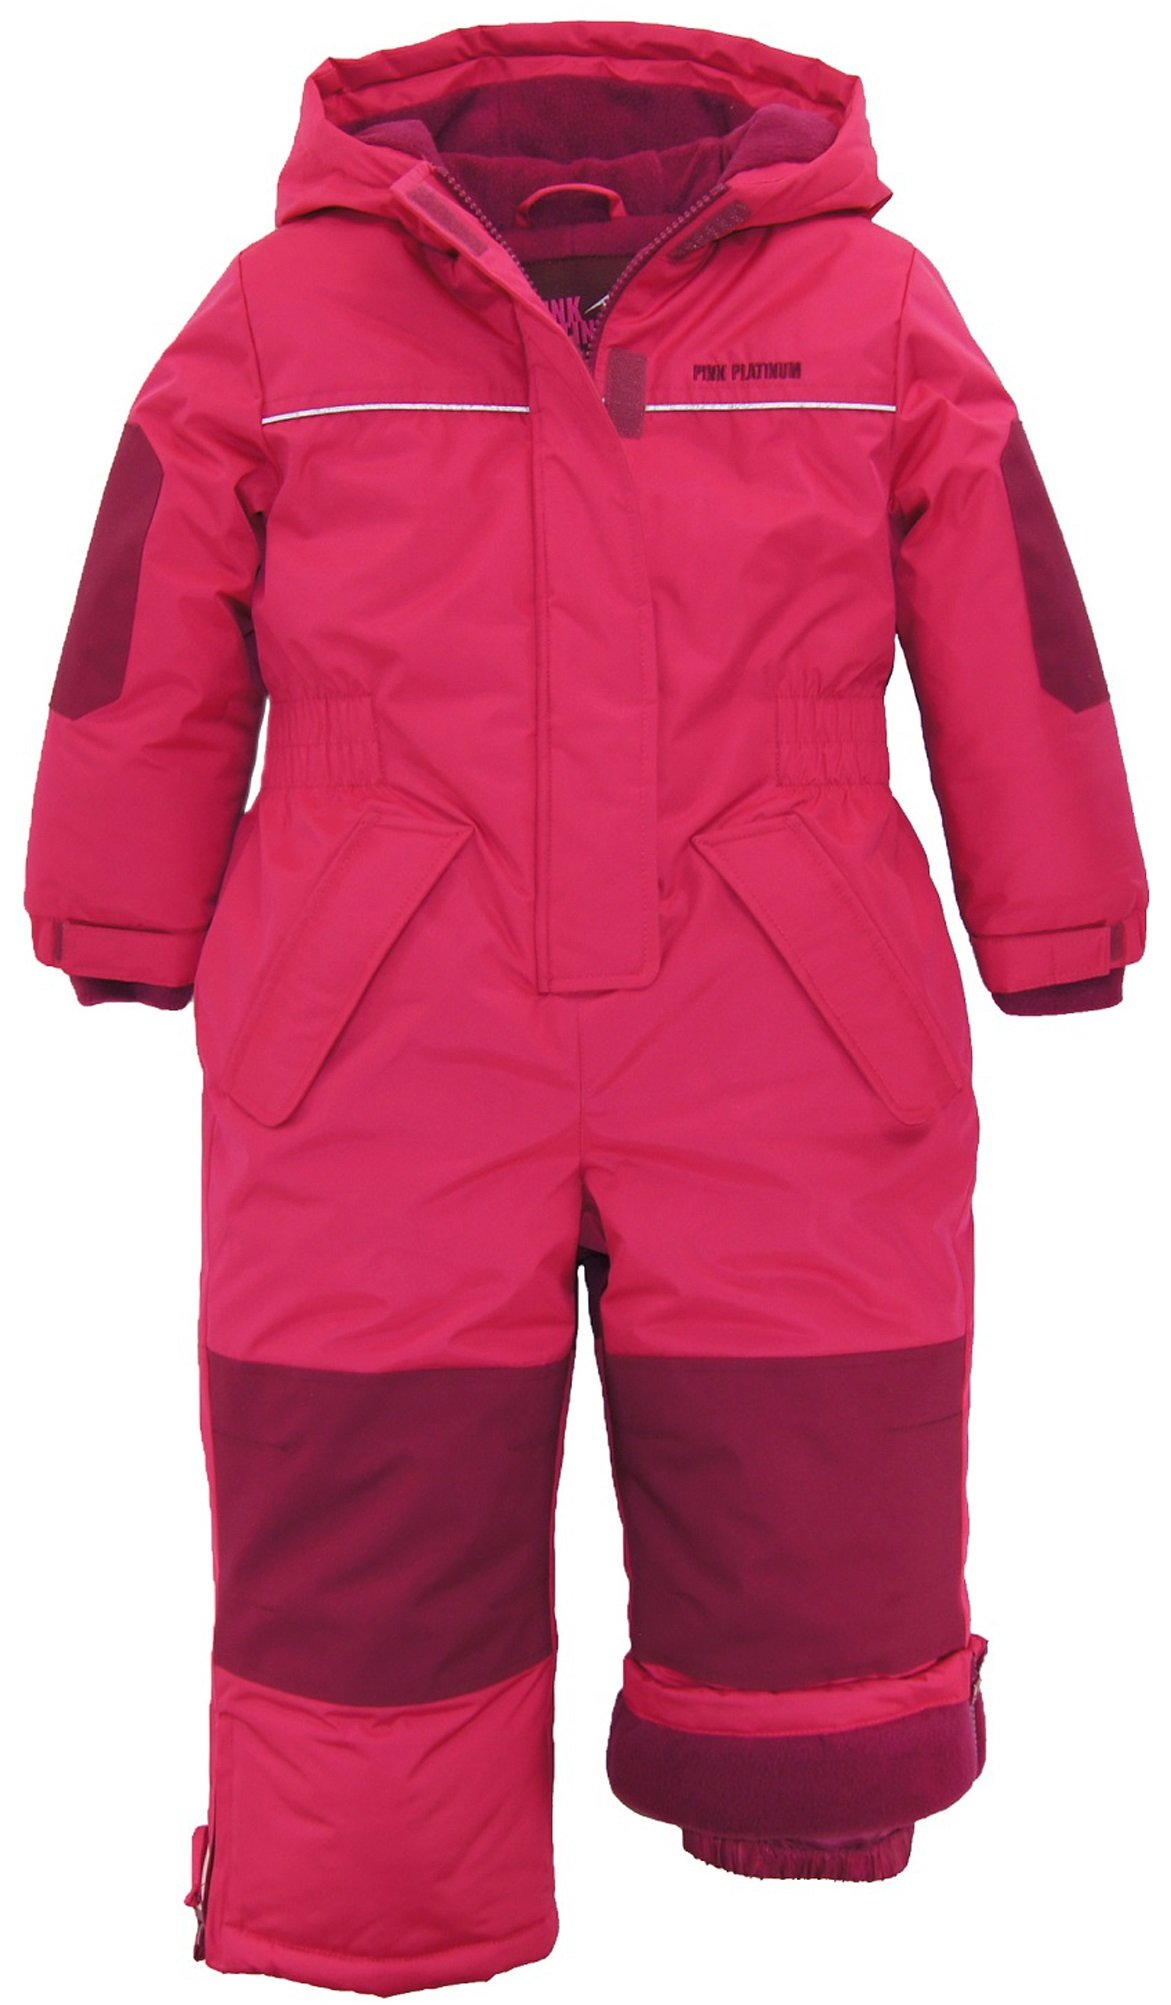 Pink Platinum Snow Mobile For Girls, Babies & Toddlers - 1-Piece Snowsuit by Pink Platinum (Image #3)